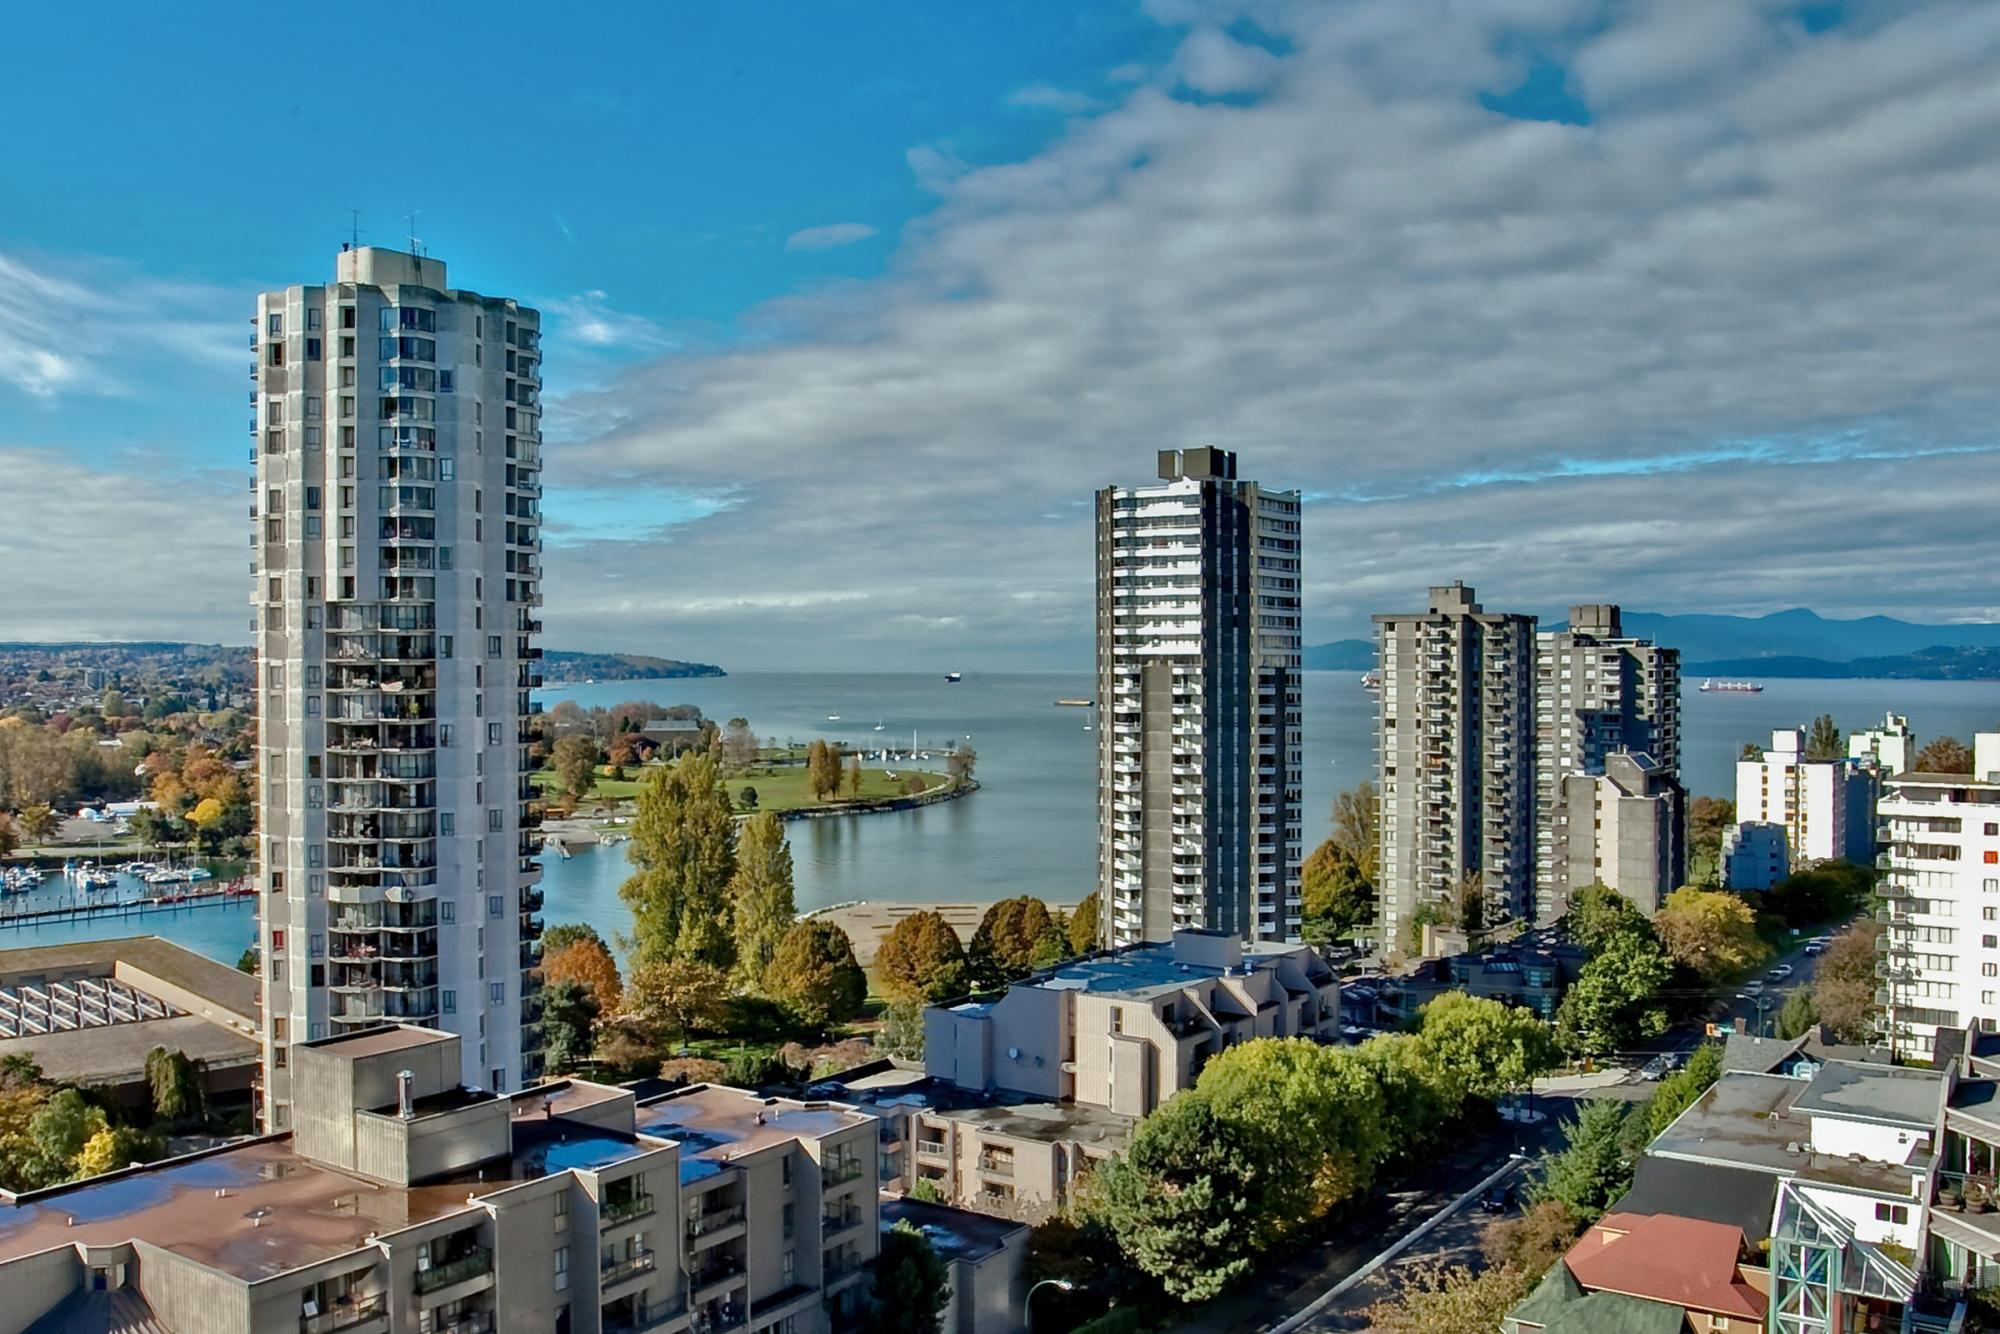 Westside Vancouver - Real Estate News and Forecast